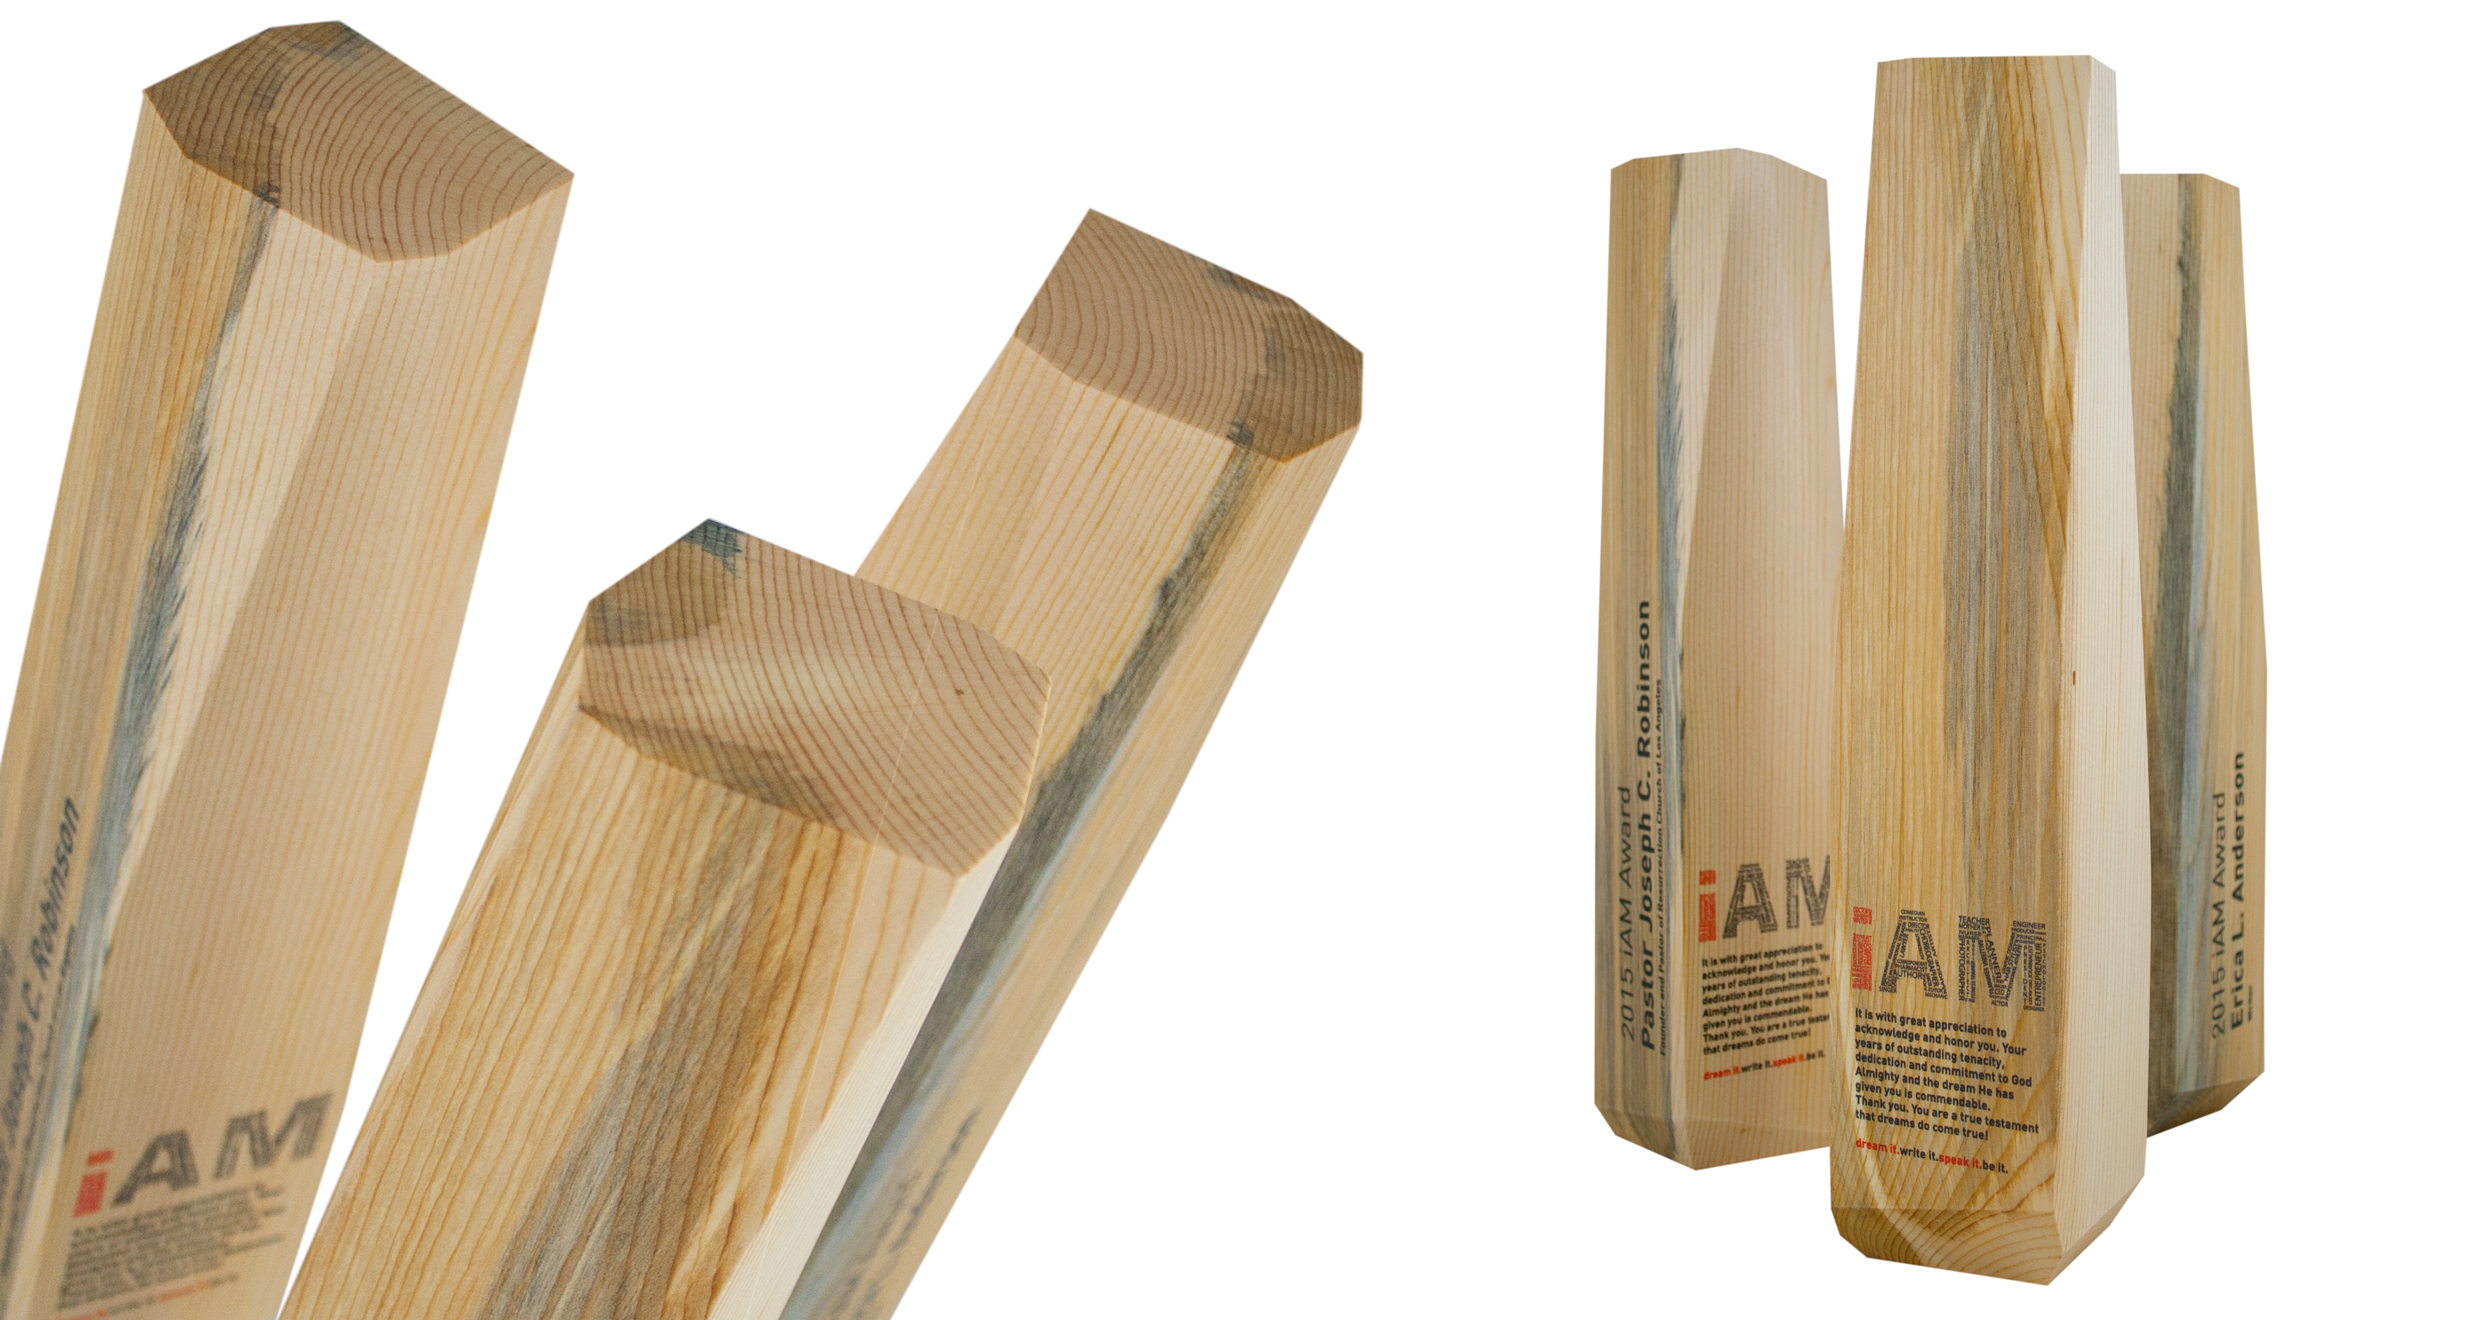 awards-eco-recovered-wood-pine-not-glass